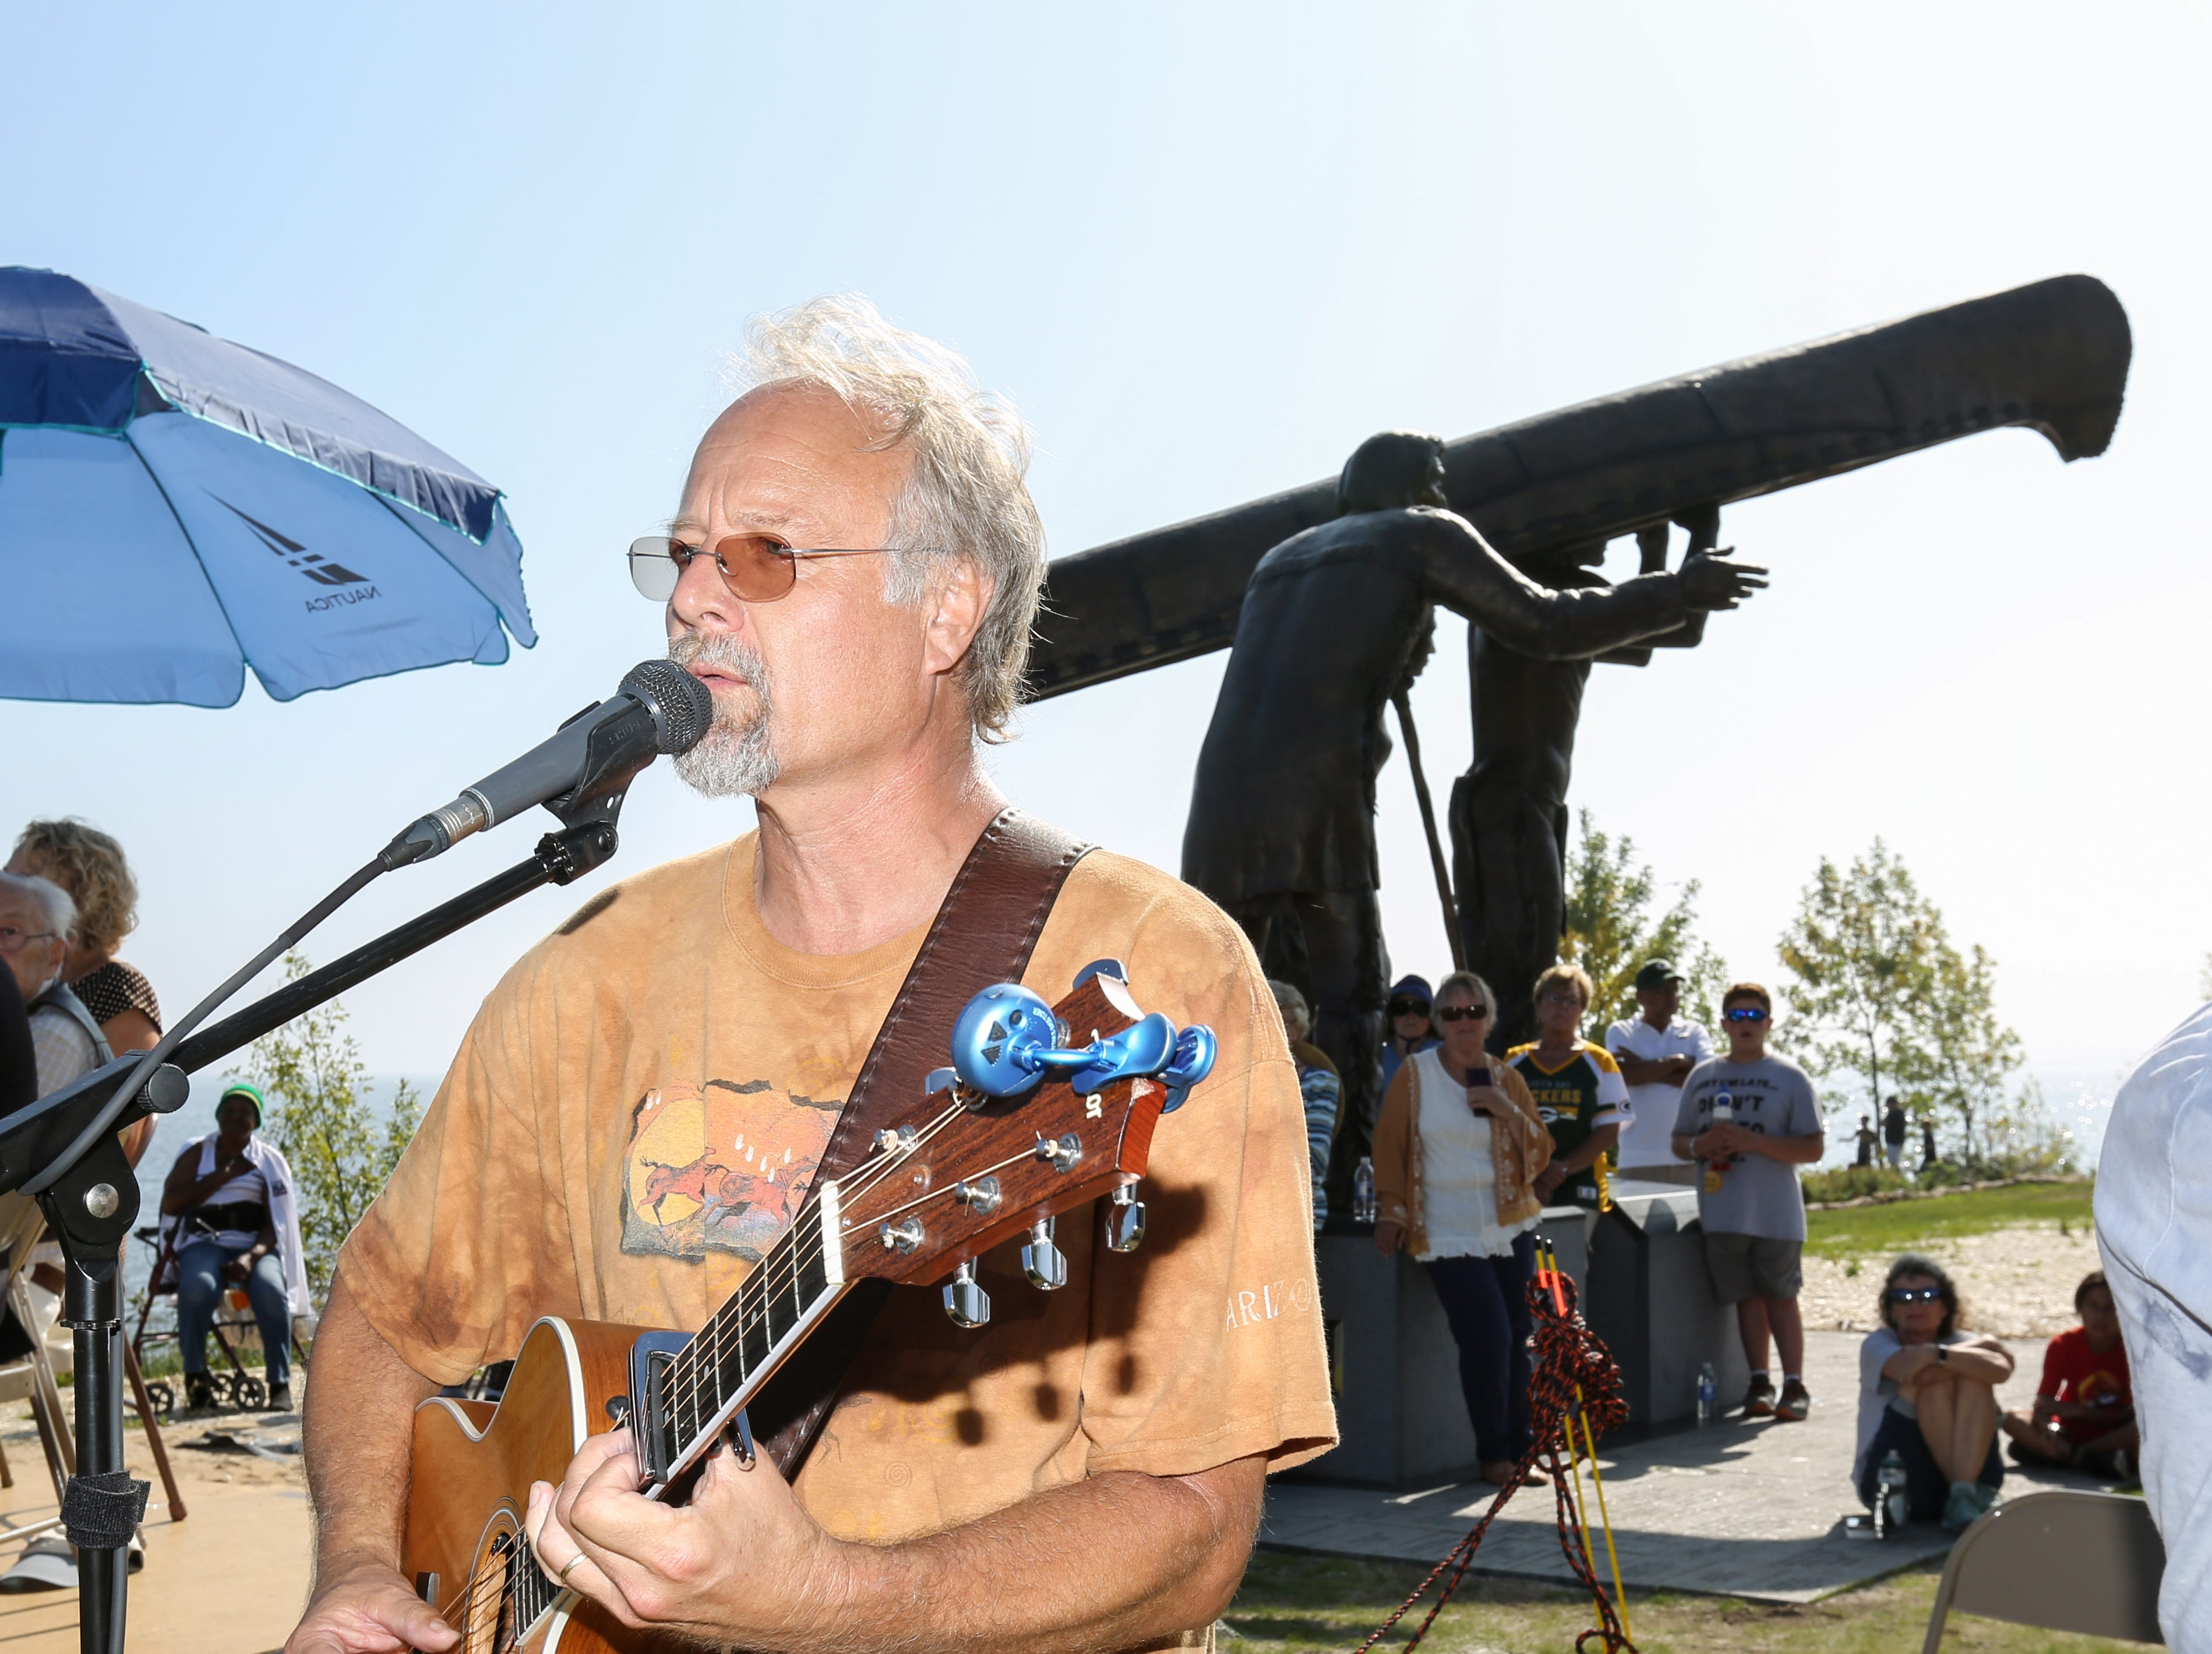 Pete Honzik sings and original song he wrote during the Spirit of the Rivers monument dedication Sunday, Sept. 16, 2018, in Two Rivers, Wis.